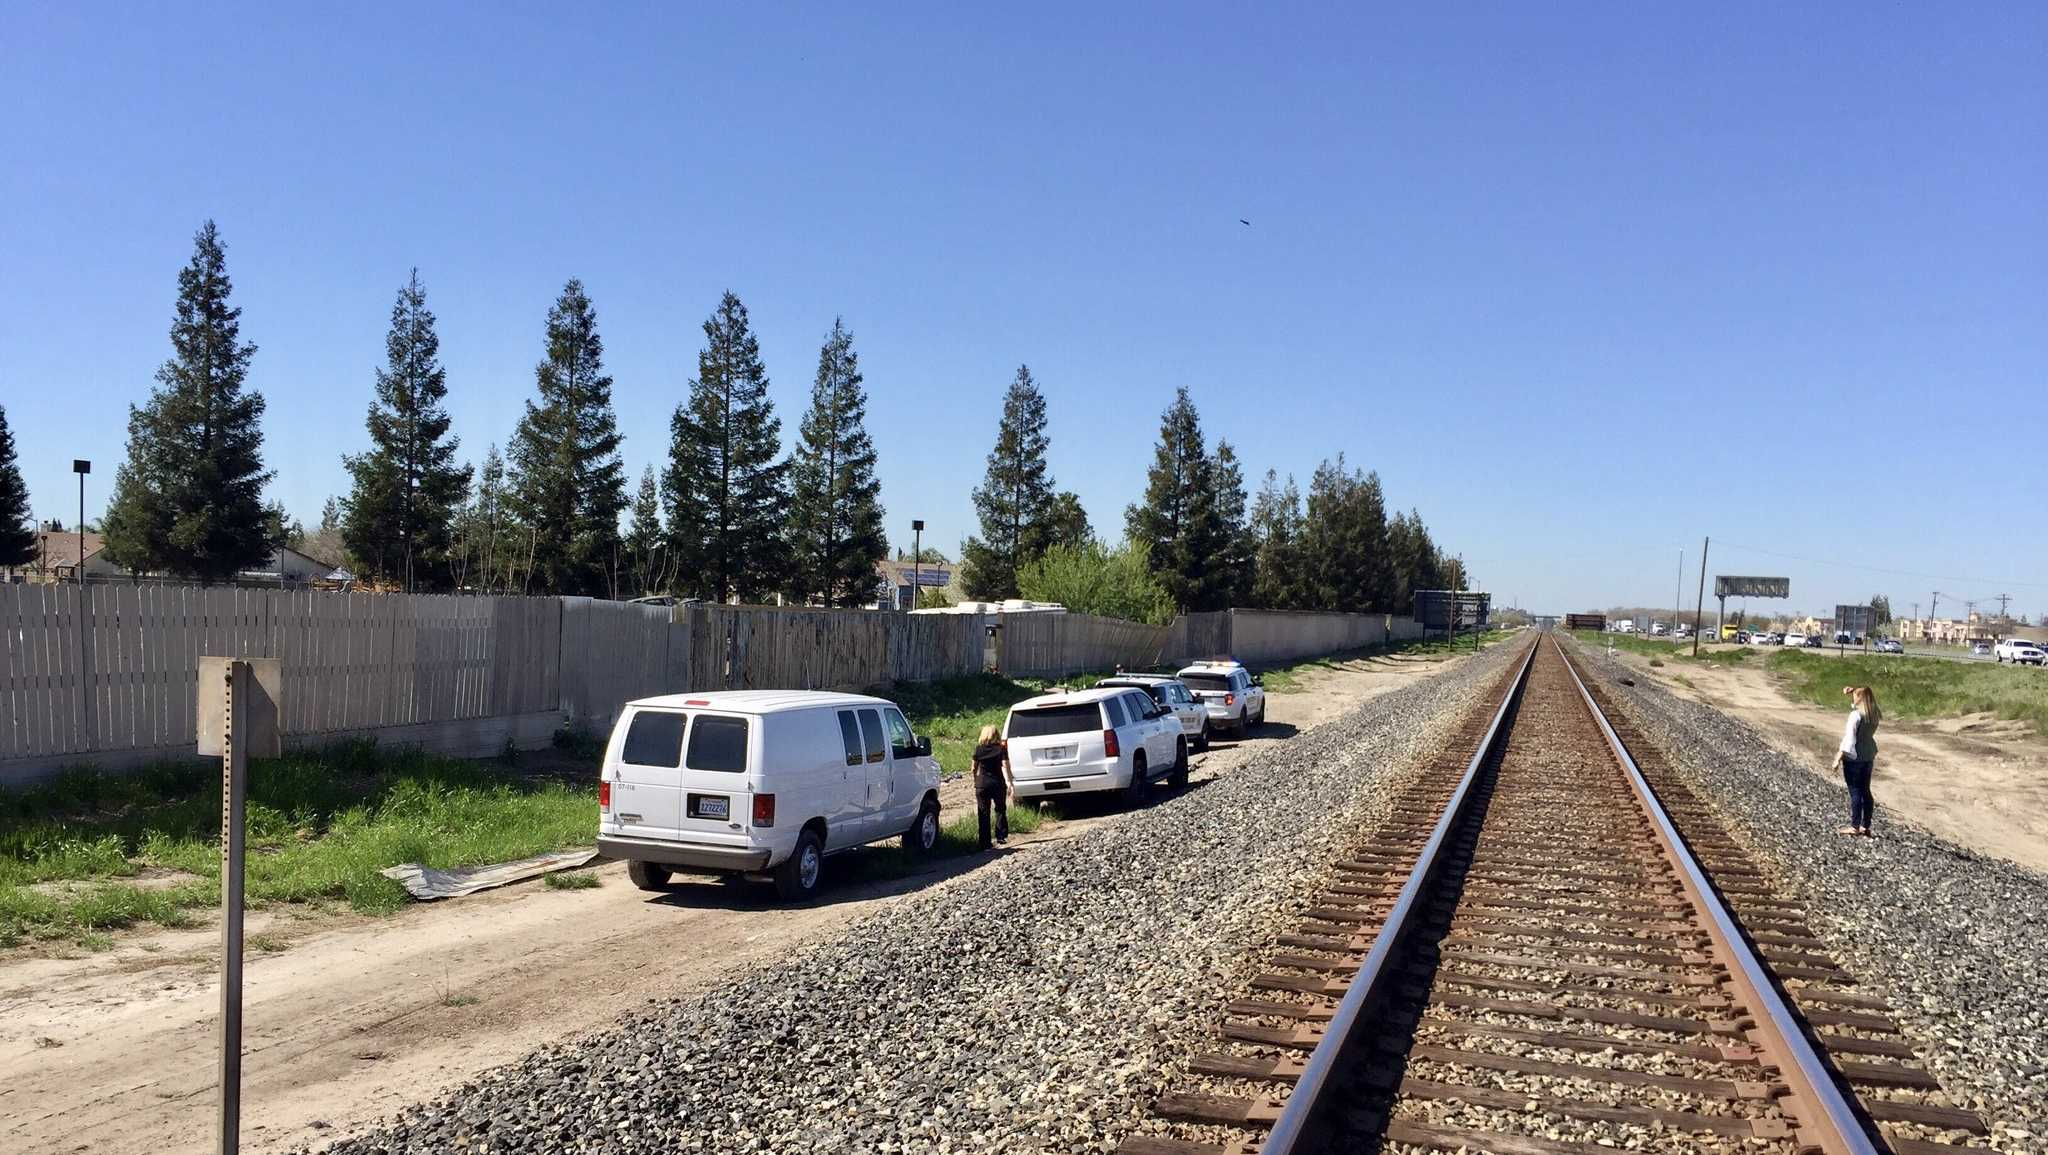 Stanislaus County sheriff's detective investigate after a body was found near Salida railroad tracks on Monday, March 13, 2017.